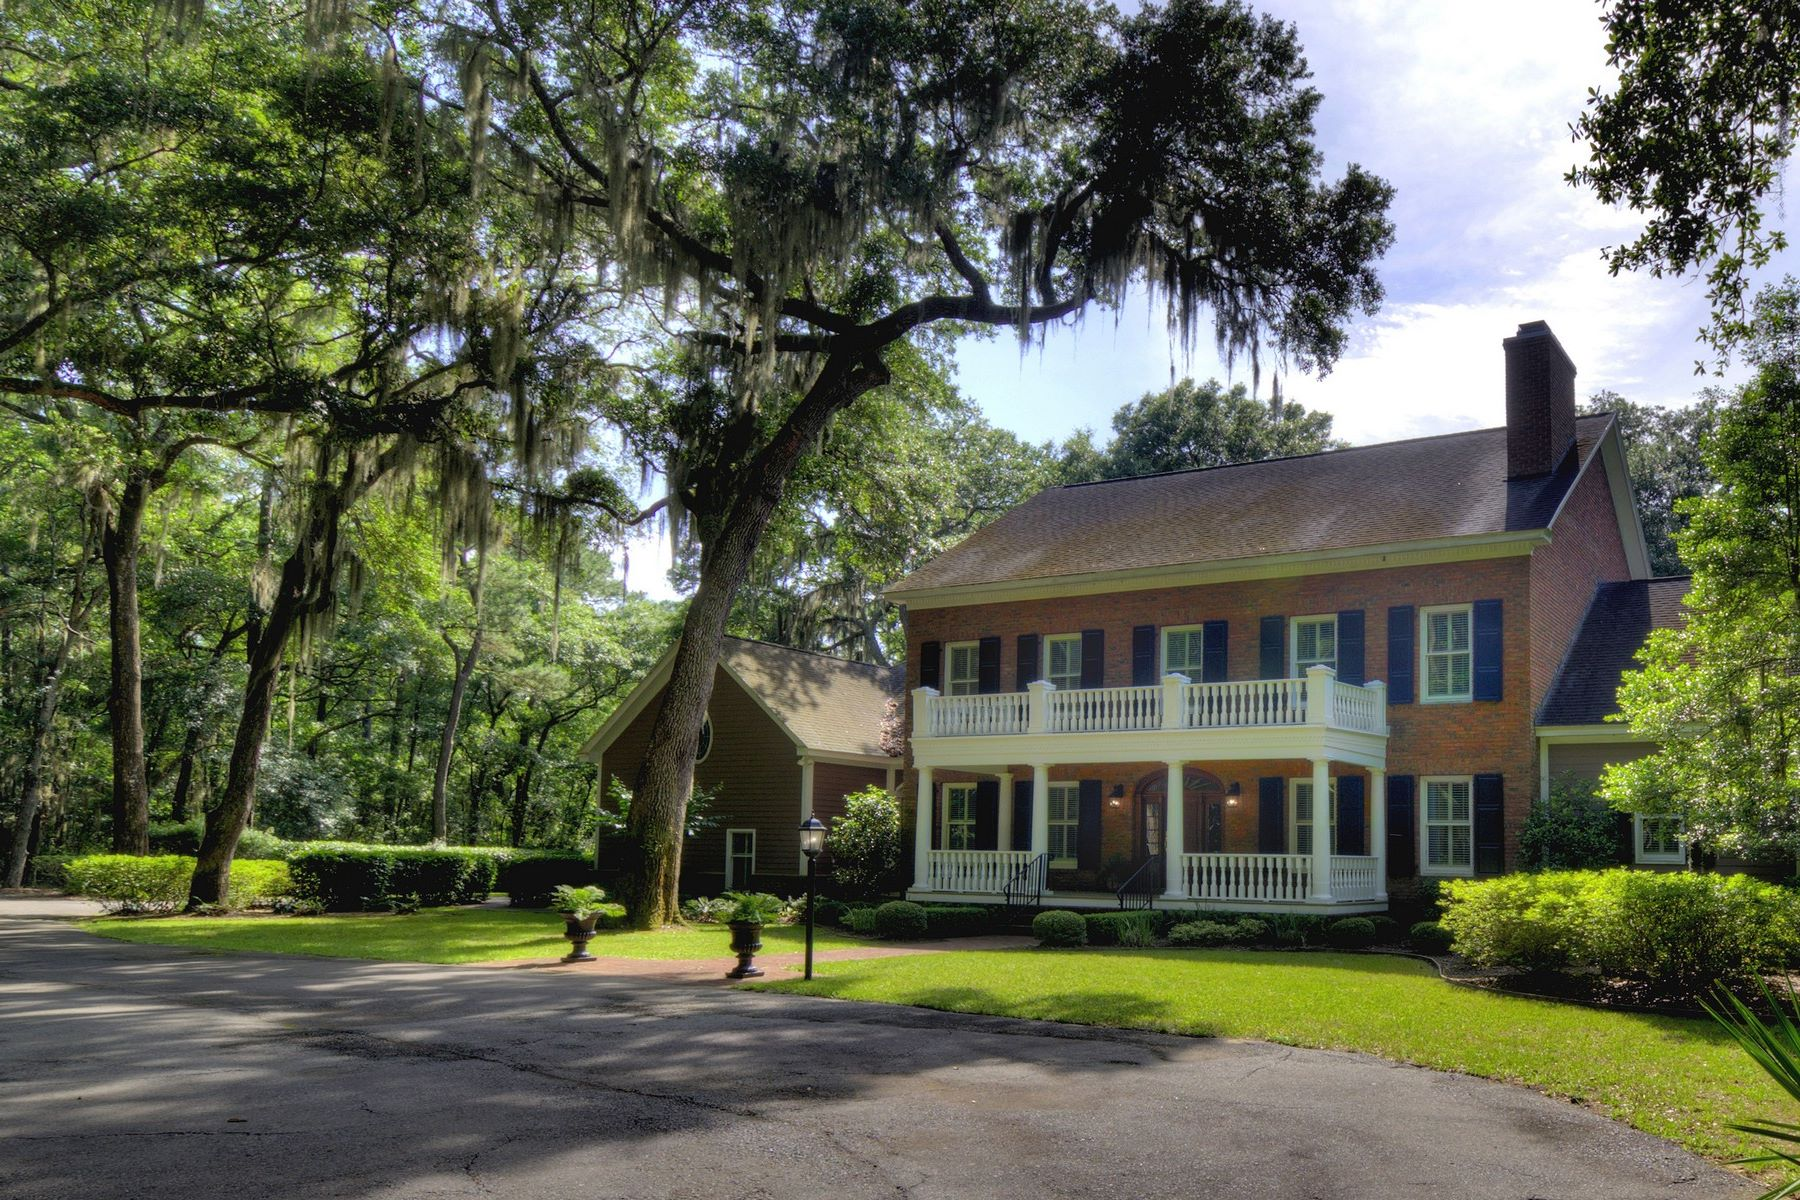 Single Family Home for Active at 25 Carriage Drive St. Simons Island, Georgia 31522 United States